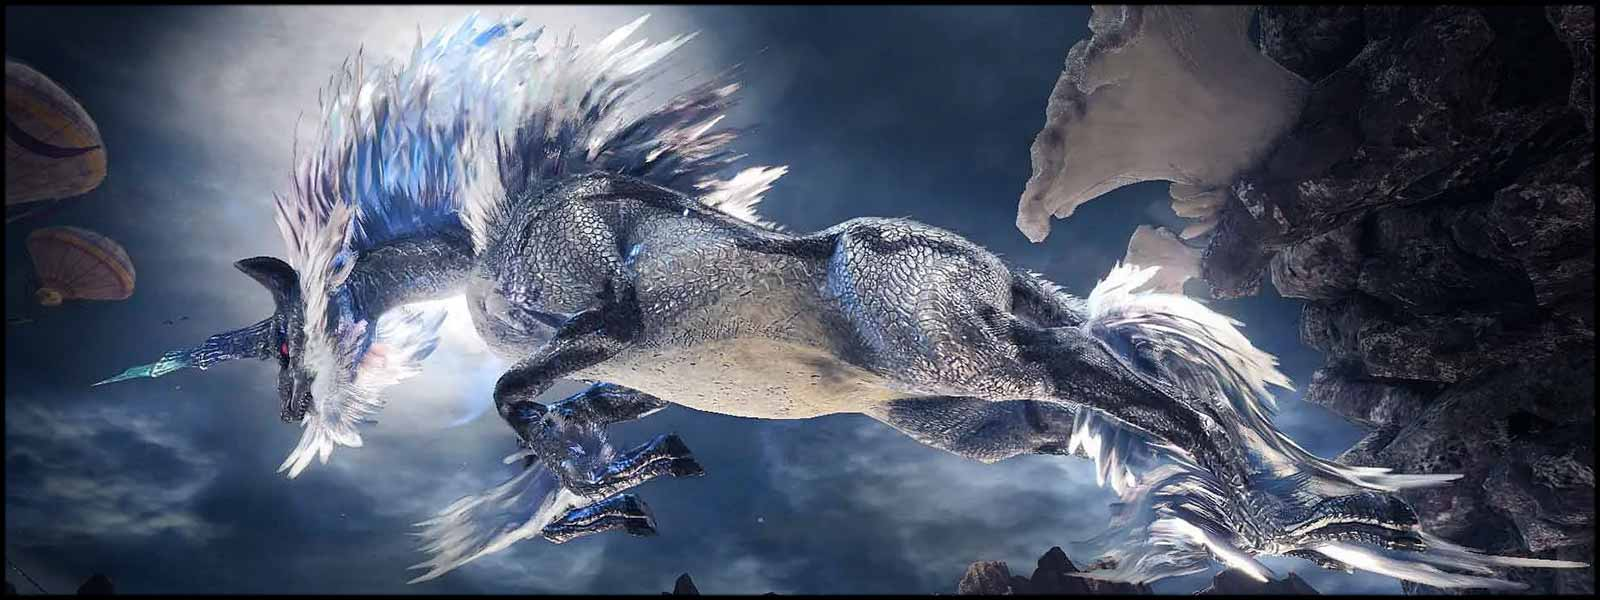 Kirin monster hunter